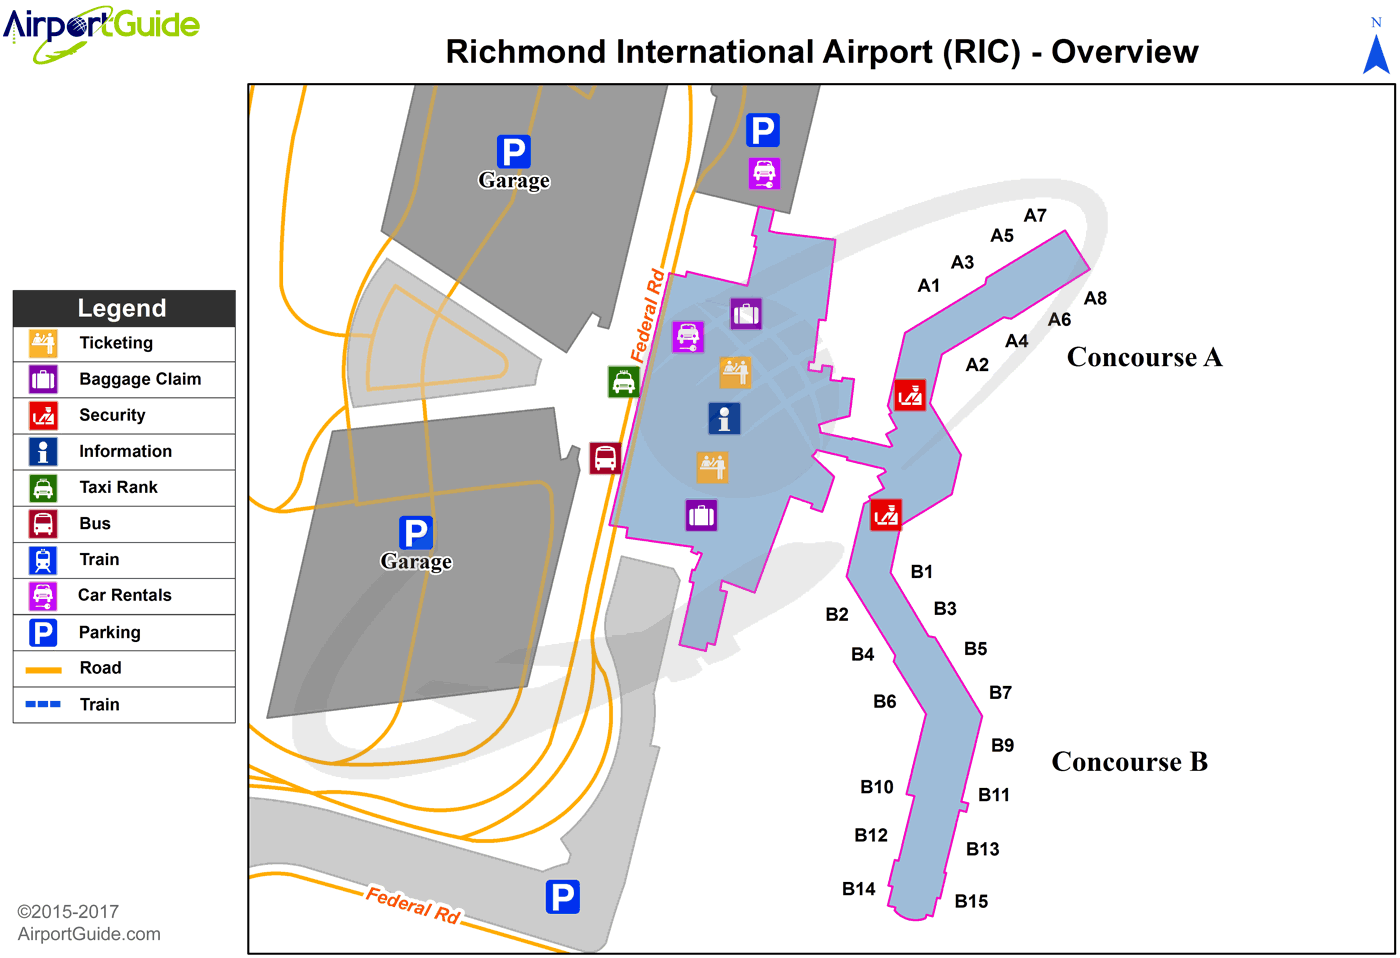 Pin on Airport Terminal Maps